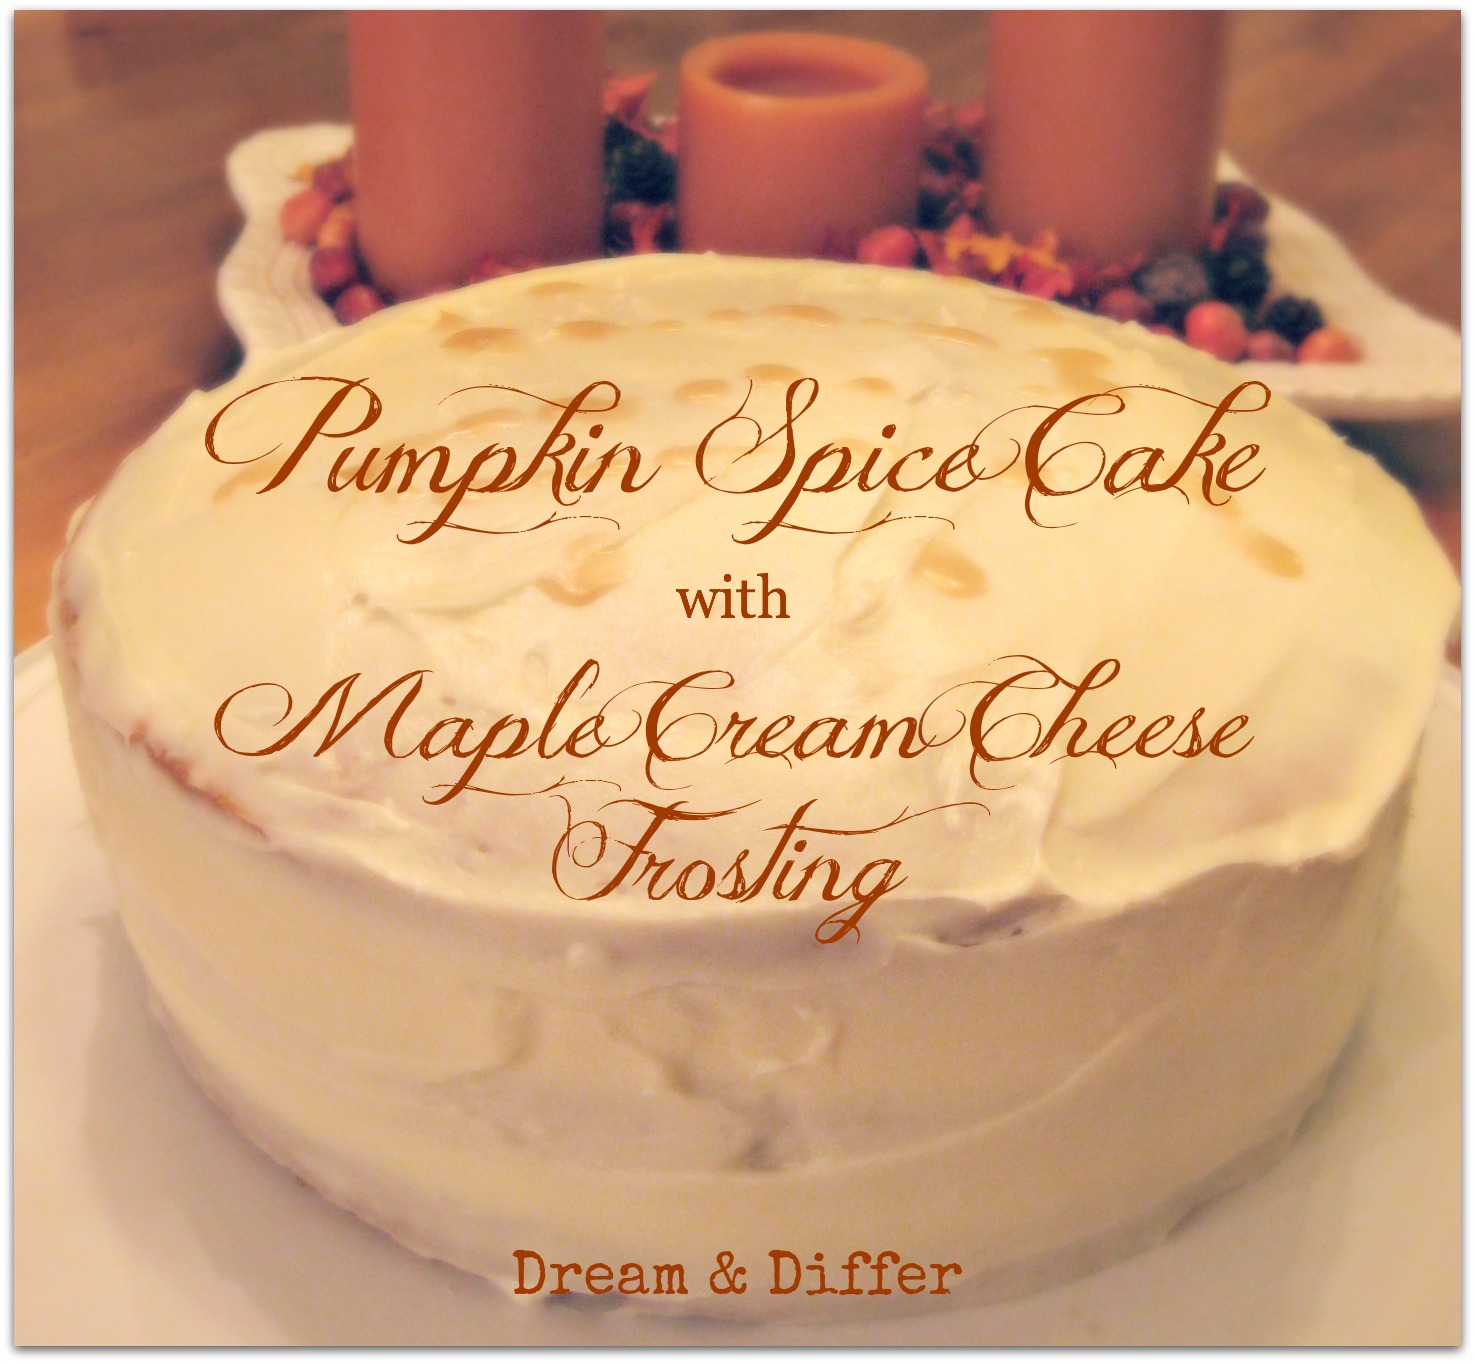 ... Food: Day 20, Pumpkin Spice Cake with Maple Cream Cheese Frosting